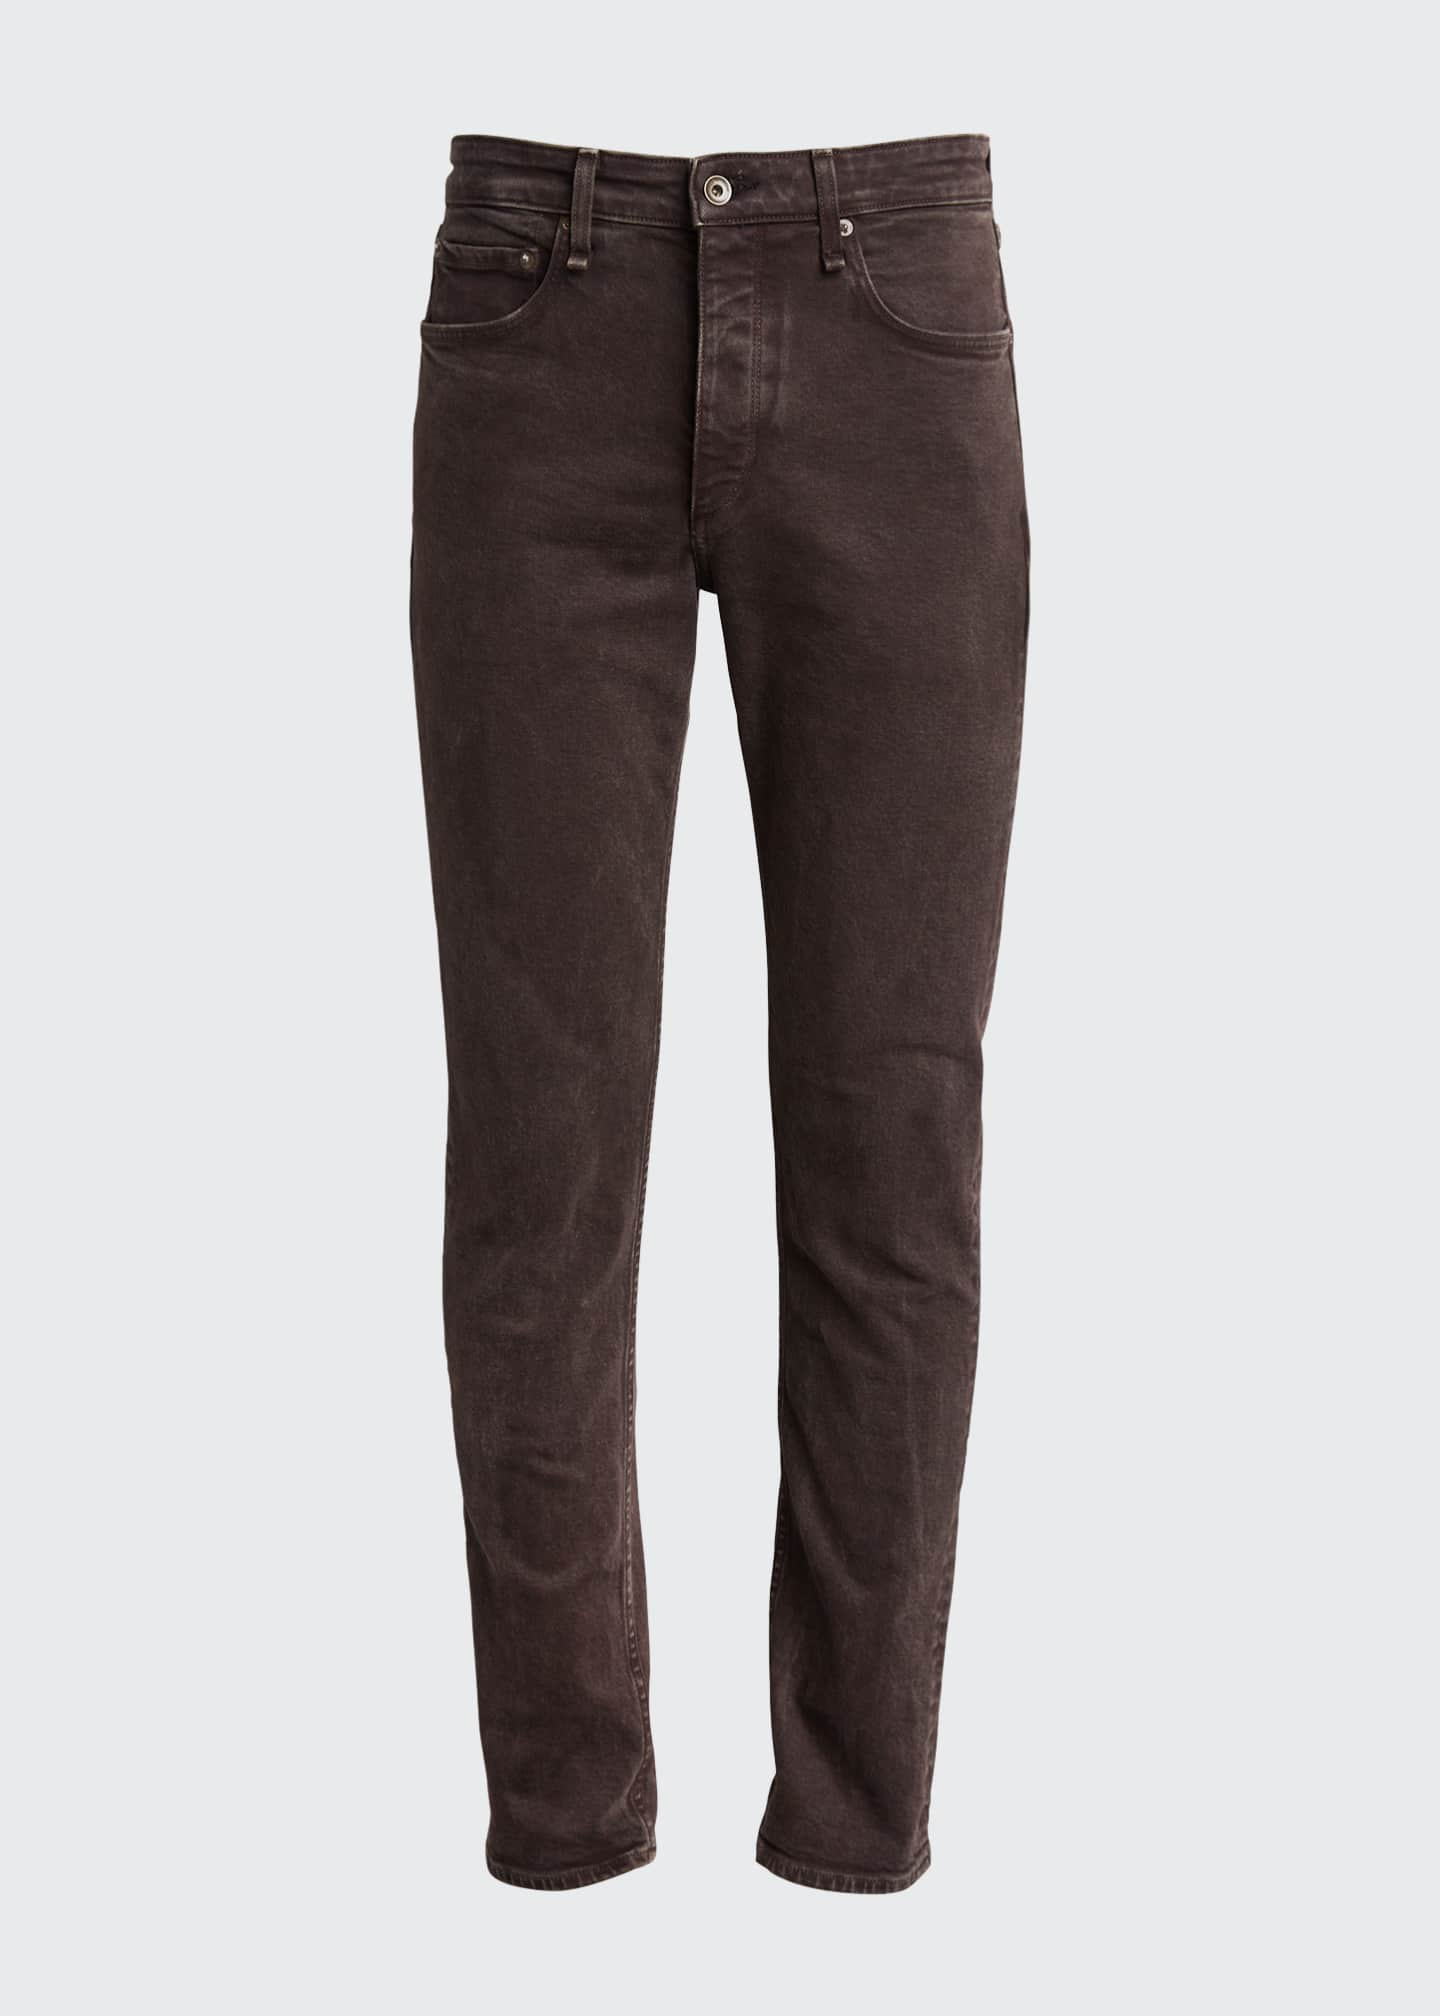 Image 5 of 5: Men's Fit 2 Mid-Rise Stone-Washed Jeans